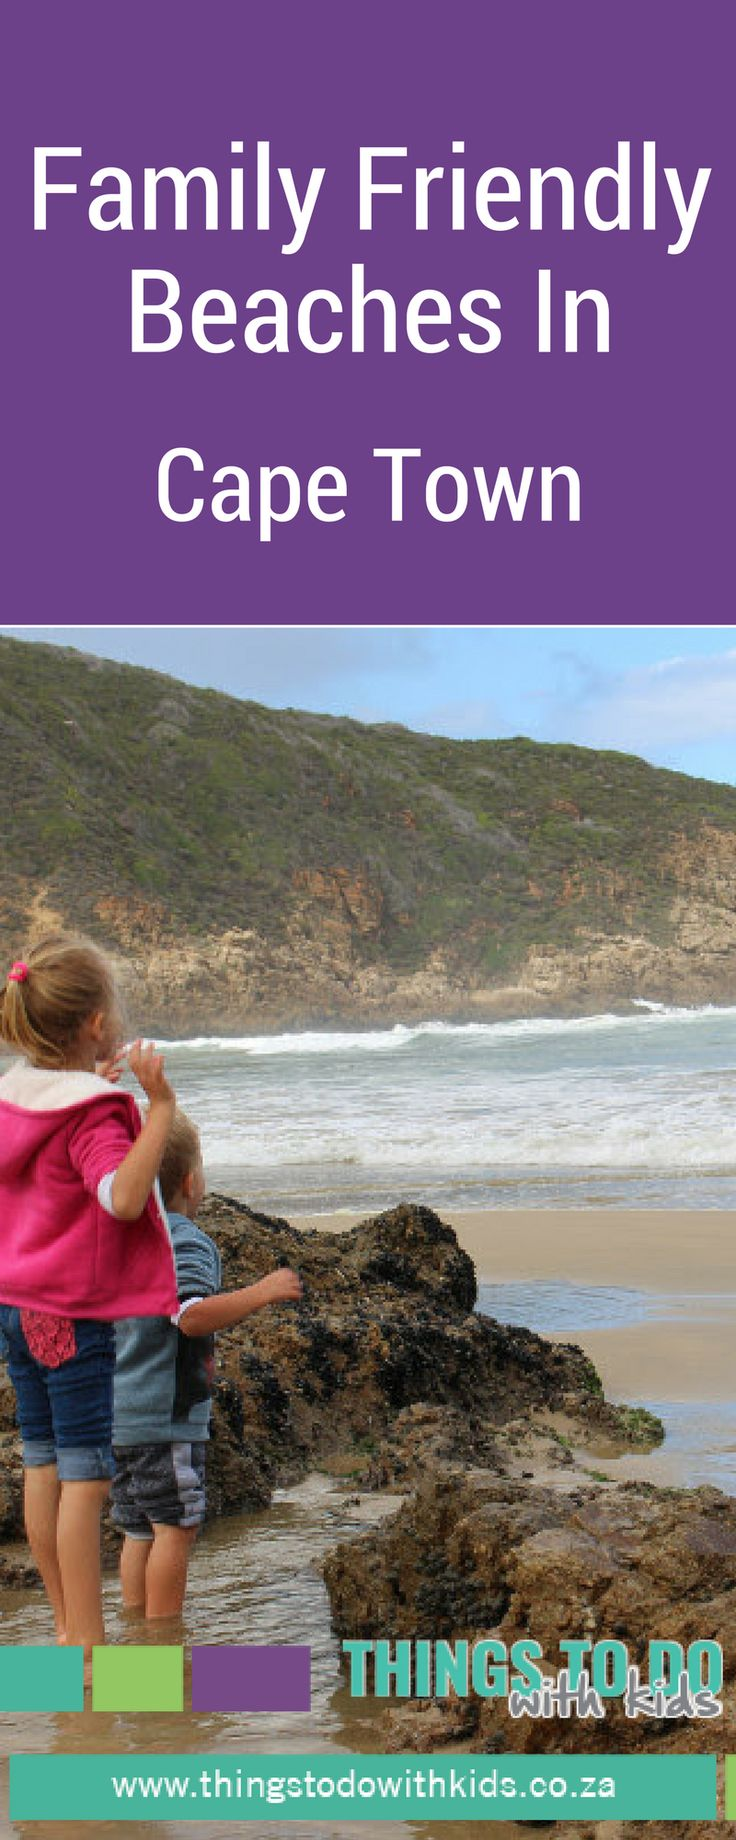 Child-friendly beaches in Cape Town | Family-friendly beaches in Cape Town | Cape Town beaches with Kids | Activities to do on Cape Town beaches | Things to do with Kids in Cape Town | Activities and Excursions | Things to do with Kids South Africa